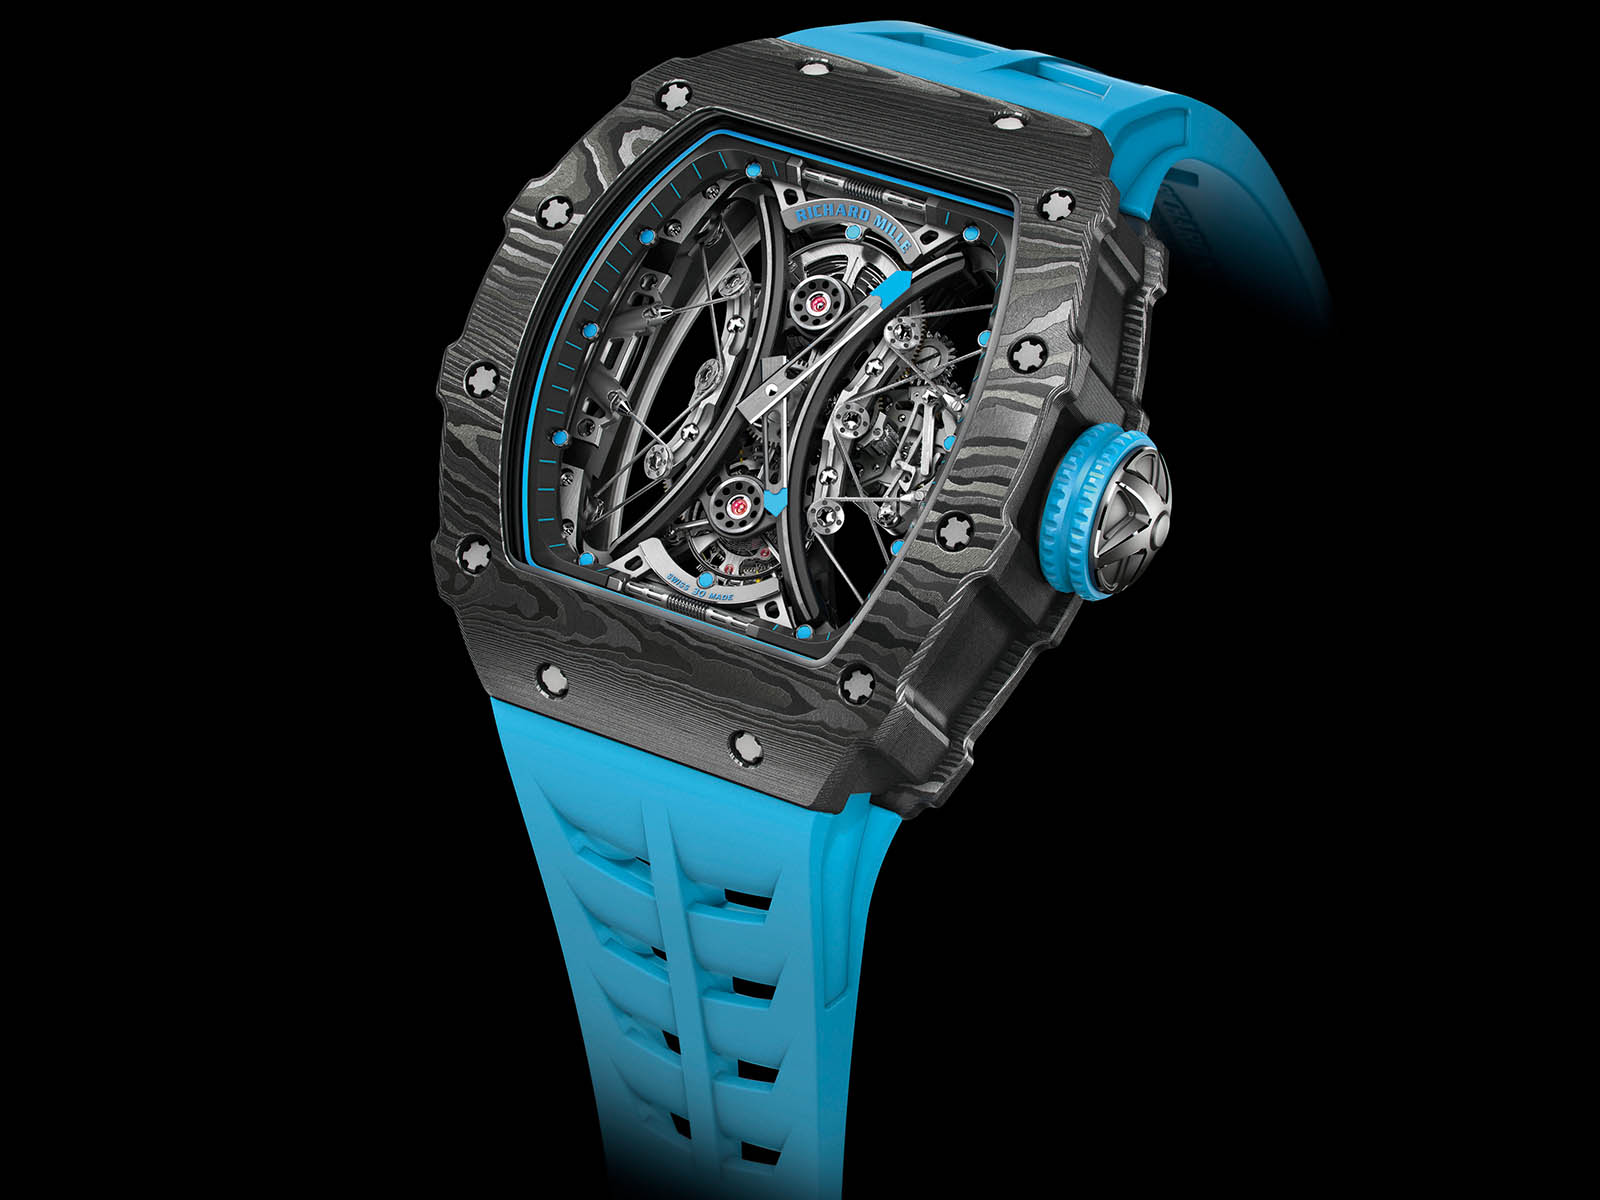 rm-53-01-richard-mille-tourbillon-pablo-mac-donough-polo-4.jpg